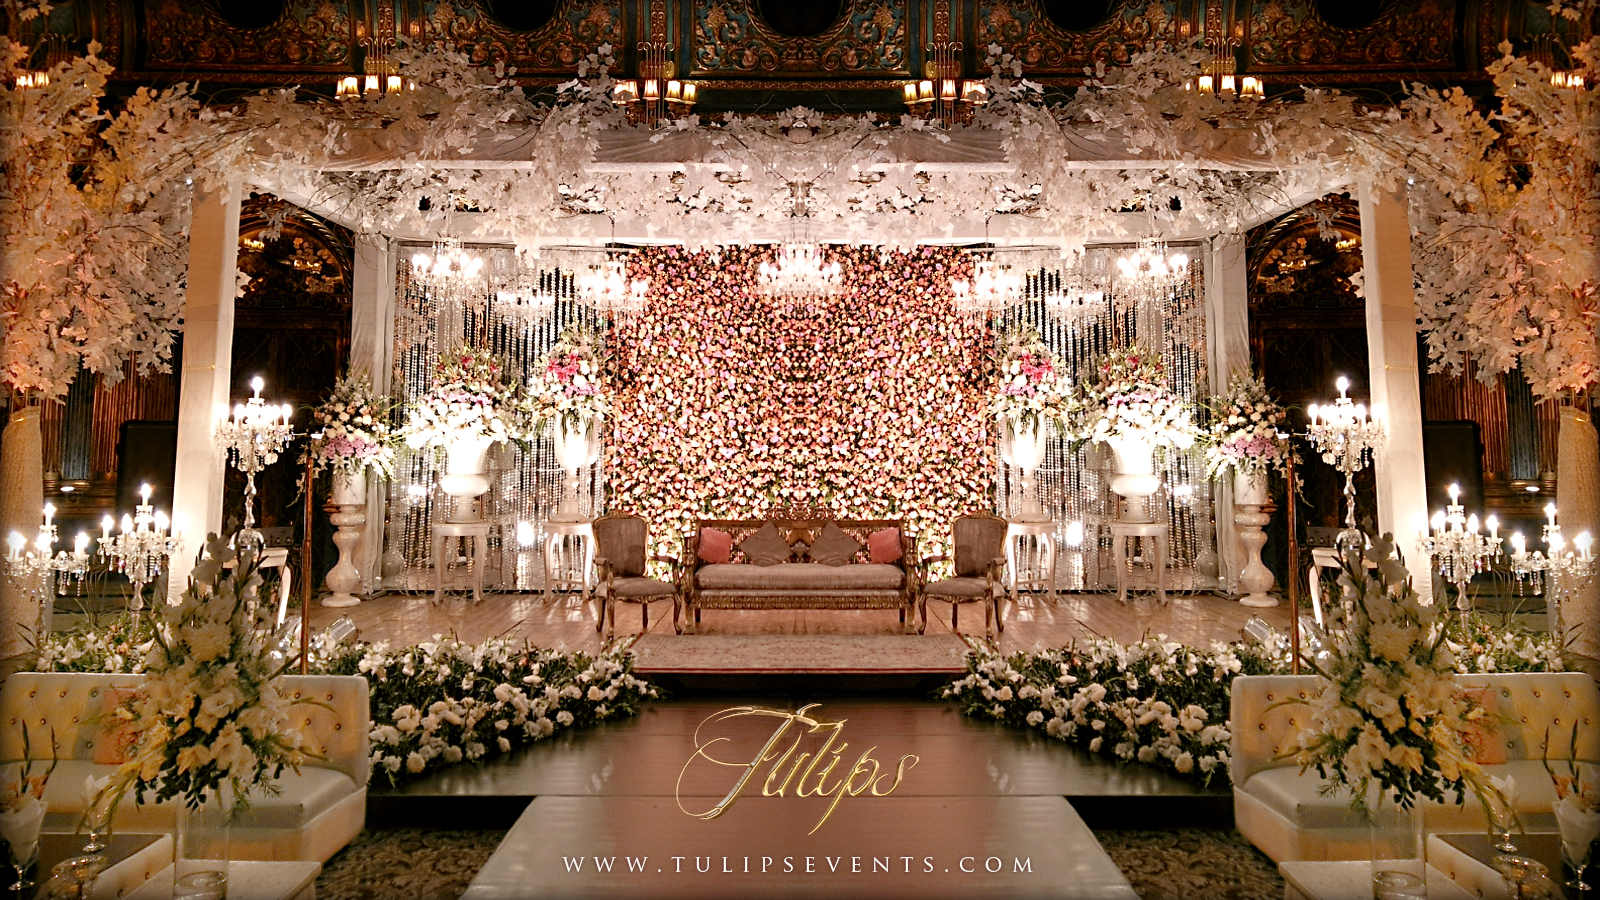 Tulips events management in lahore pakistan tulips for Muslim wedding home decorations